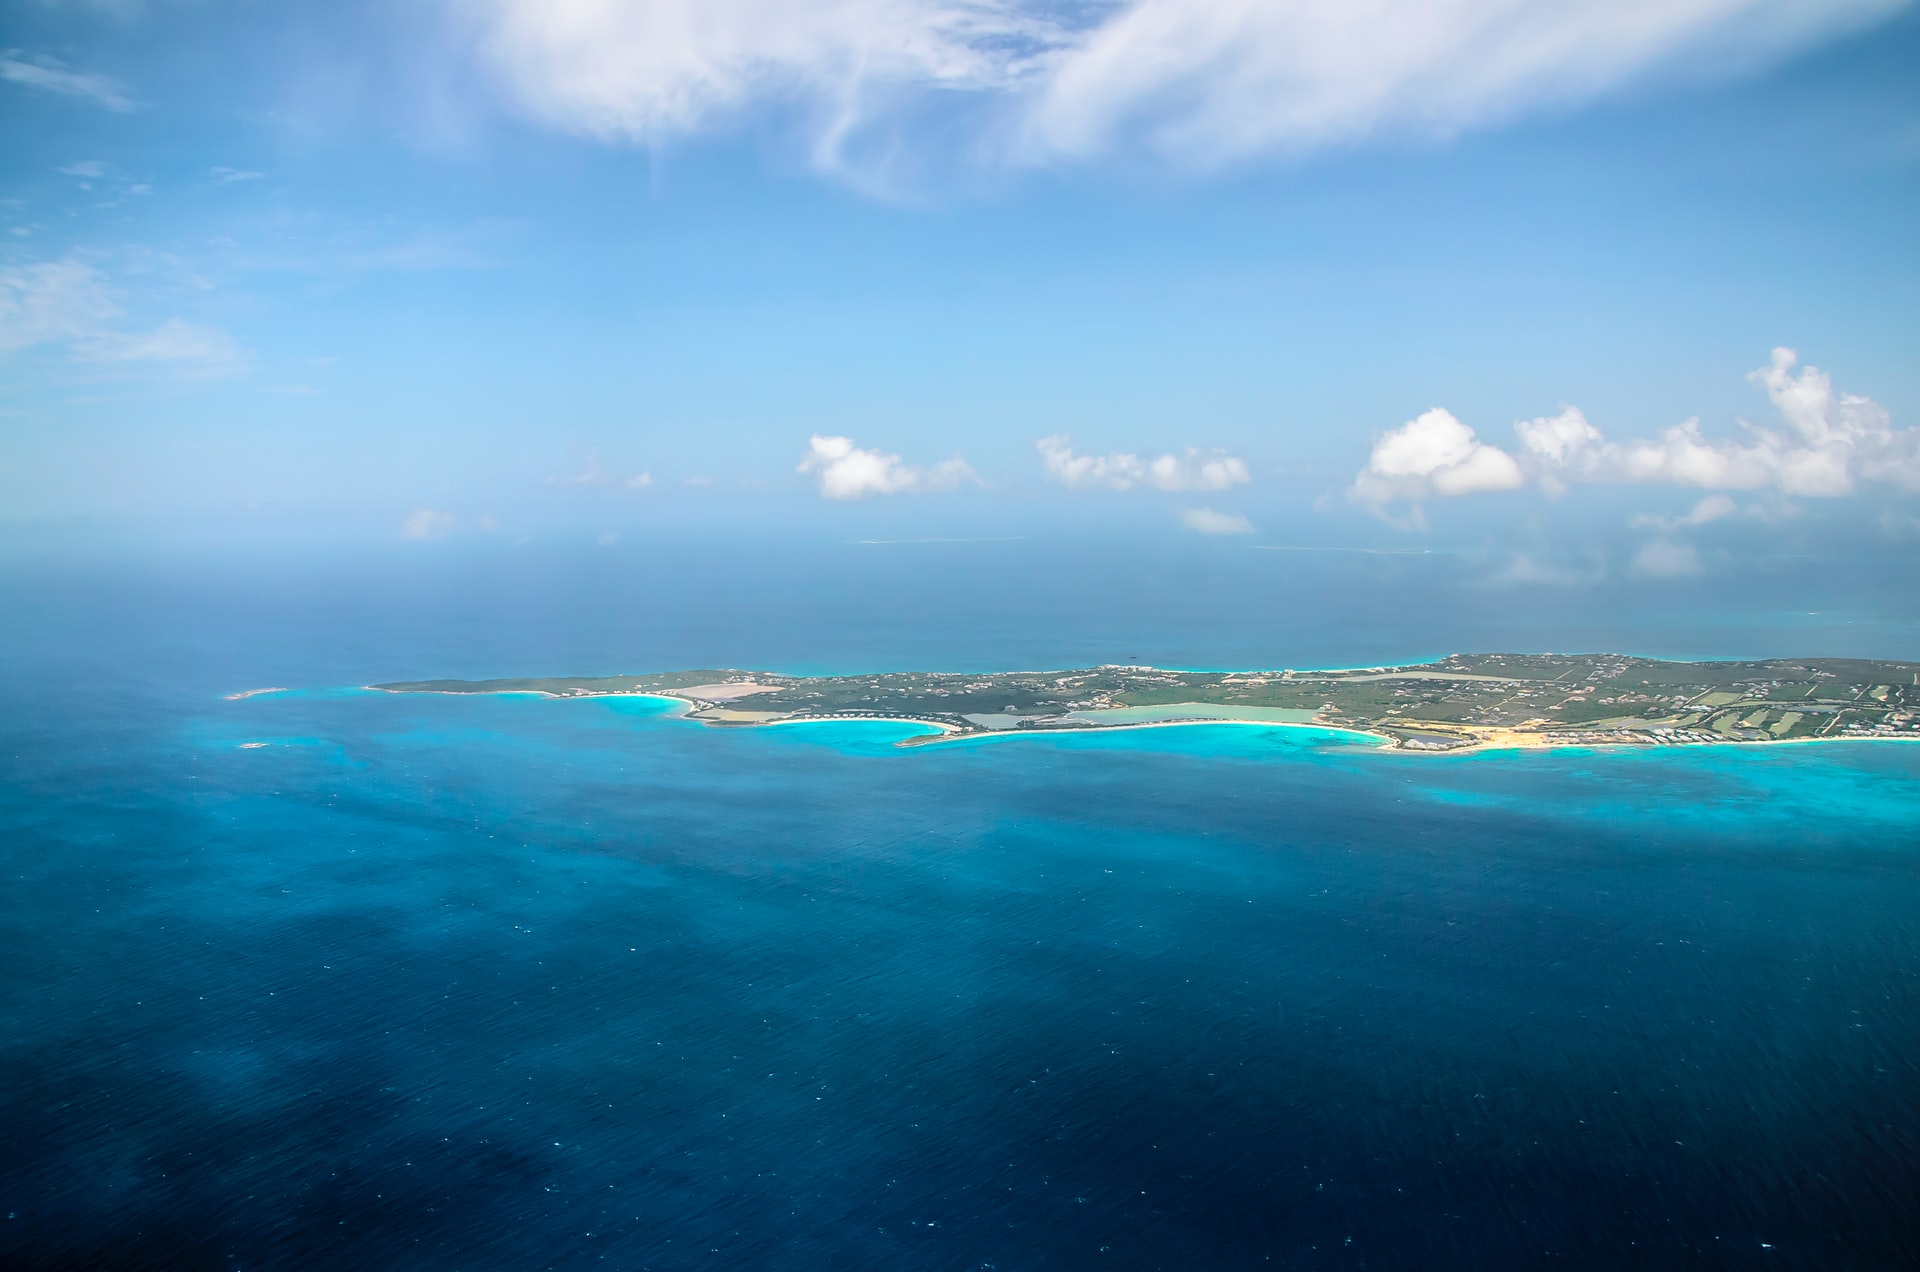 Anguilla from a plane showcasing the small island and the deep blue ocean surrounding it